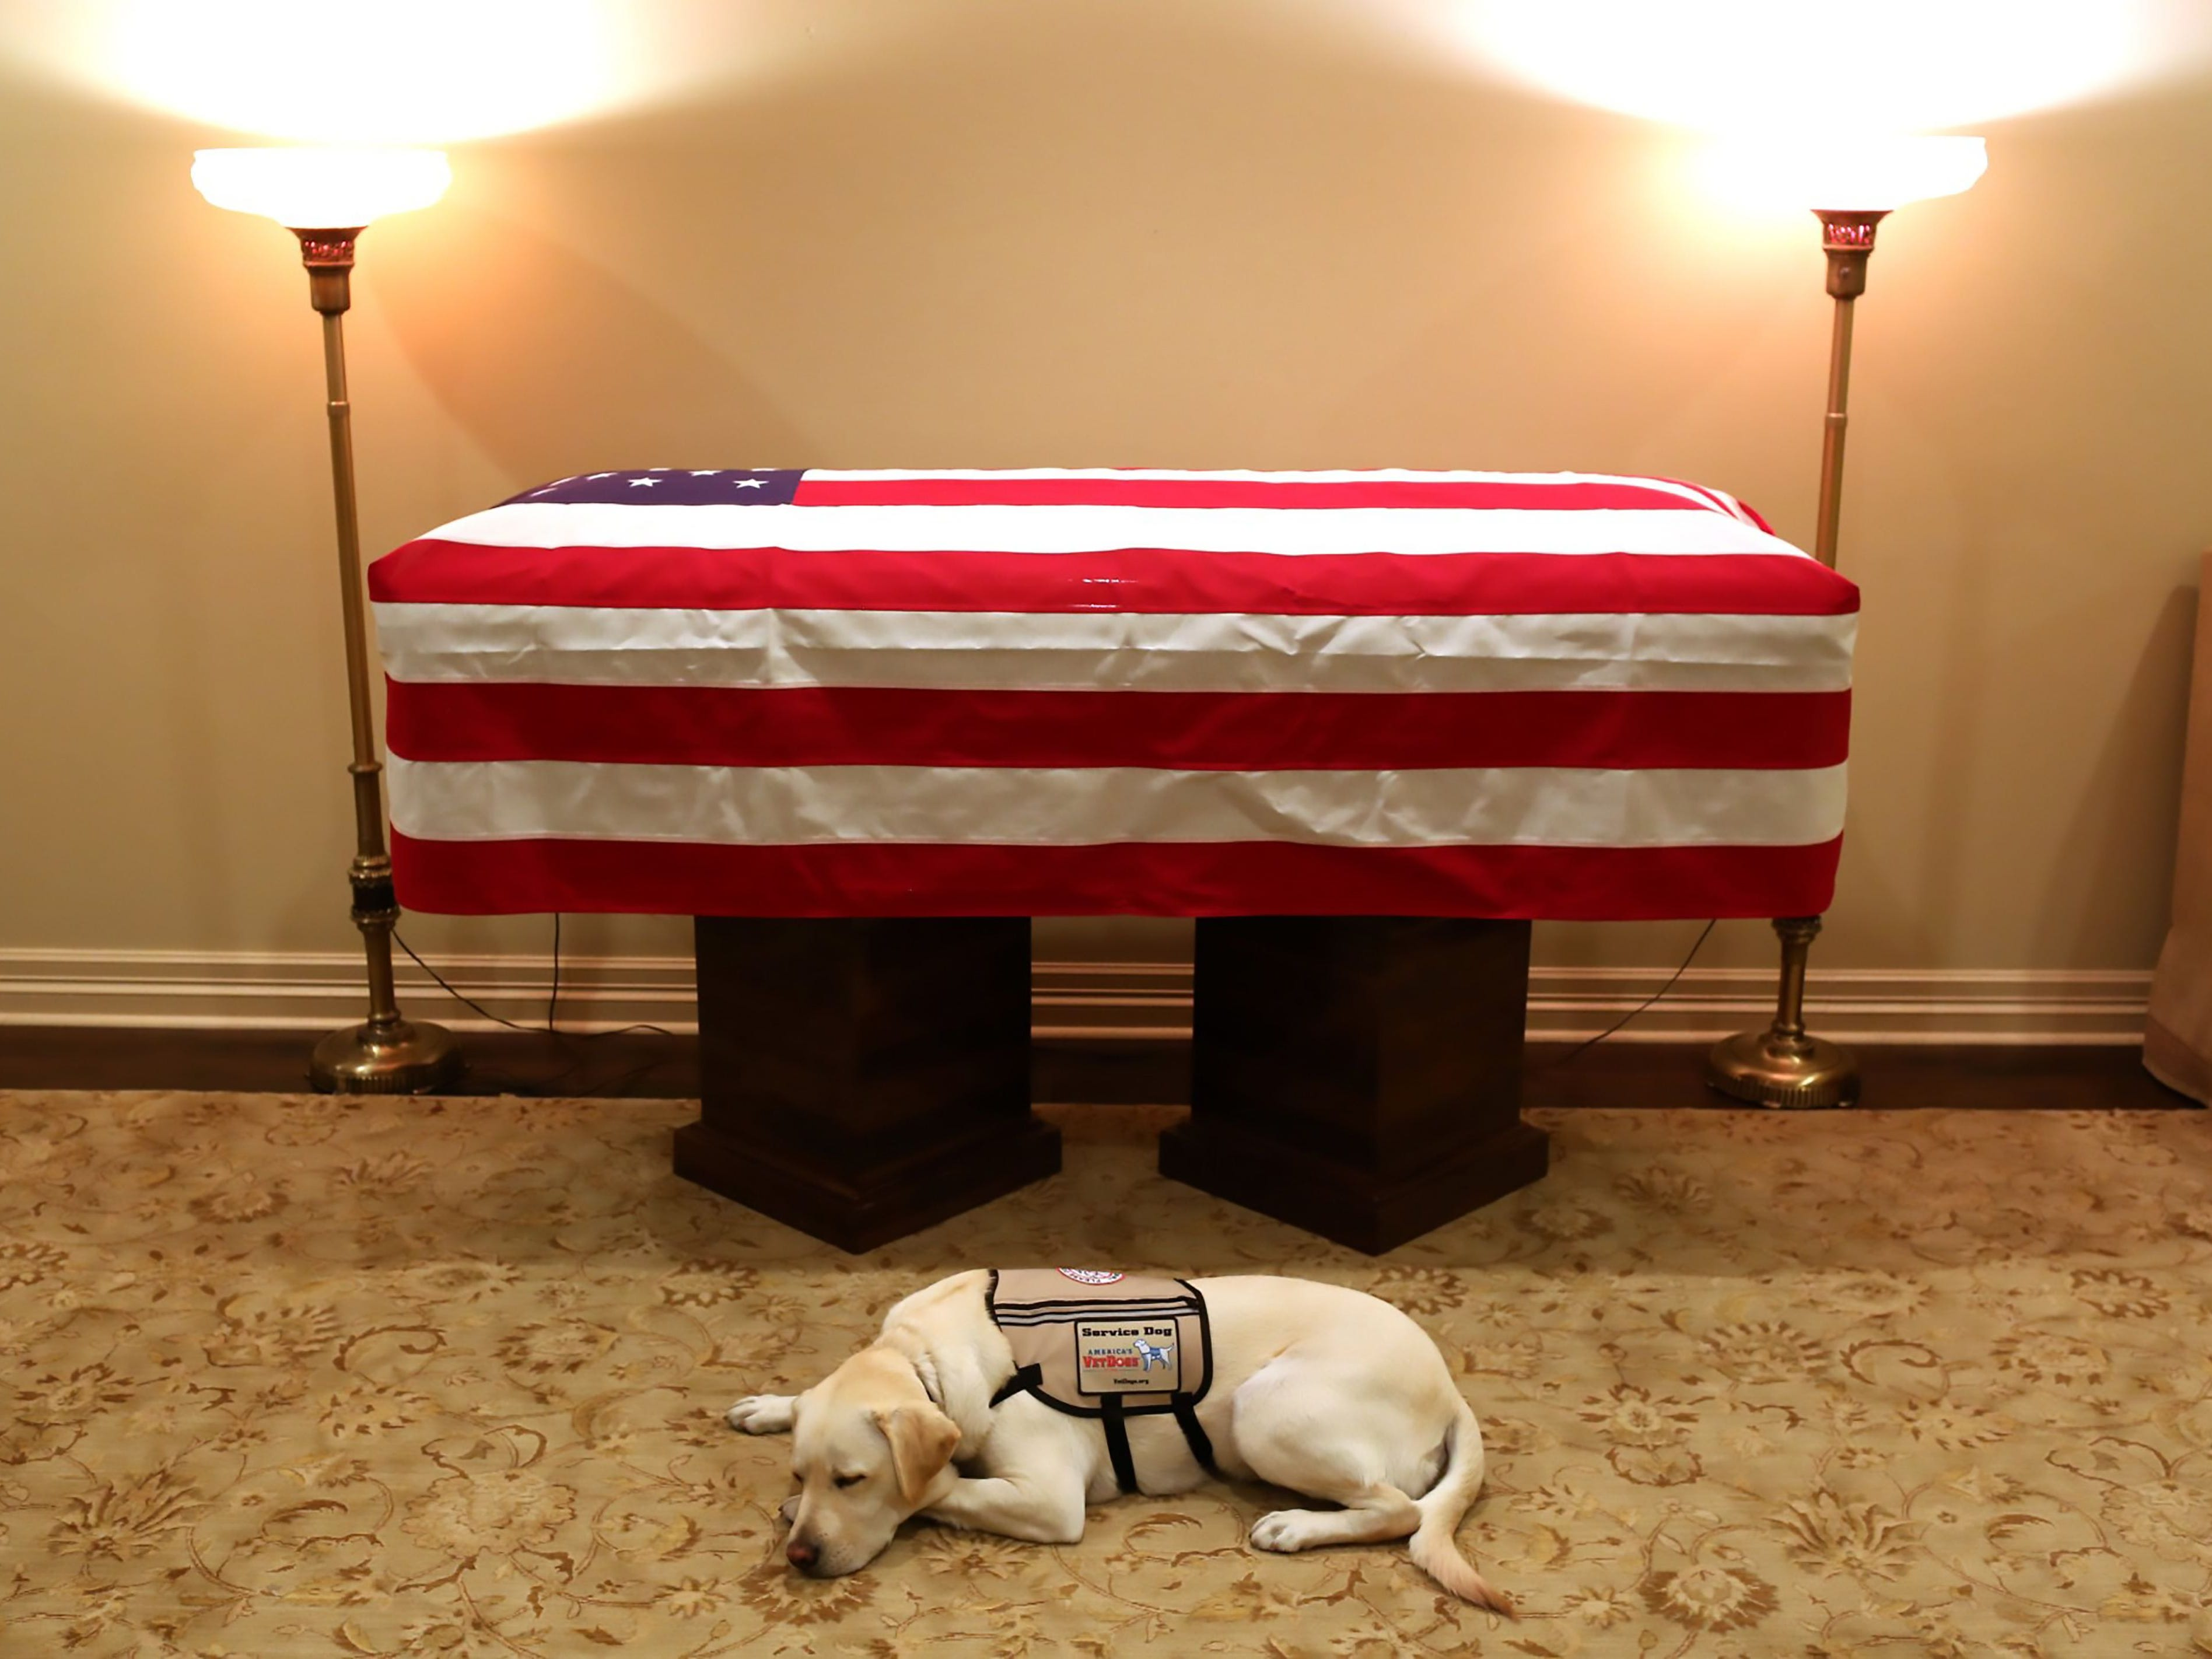 """TOPSHOT - This handout photograph obtained December 3, 2018 courtesy of the Office of George H.W. Bush, shows the yellow Labrador retriever Sully, the late former US president's faithful service dog, lying in front of Bush's casket on December 2, 2018 in Houston, Texas. - A US president is believed to have said the easiest way to find a friend in Washington was to get a dog. On Monday, December 3, 2018, George H.W. Bush's faithful service dog Sully made a final journey back to the US capital with the late president. Two days after Bush's death at age 94, family spokesman Jim McGrath posted a touching photograph of the yellow Labrador retriever lying down in front of Bush's casket, with the accompanying phrase """"Mission Complete"""" and the hashtag #Remembering41. The two-year-old Sully has been at Bush's side since June, just weeks after the death of the president's wife Barbara, to whom he was married for 73 years. (Photo by Evan Sisley / Office of George H. W. Bush / AFP) / == RESTRICTED TO EDITORIAL USE  / MANDATORY CREDIT:  """"AFP PHOTO /  Office of George H.W. Bush / Evan SISLEY"""" / NO MARKETING / NO ADVERTISING CAMPAIGNS /  DISTRIBUTED AS A SERVICE TO CLIENTS  ==EVAN SISLEY/AFP/Getty Images ORG XMIT: Service d ORIG FILE ID: AFP_1BB6J0"""